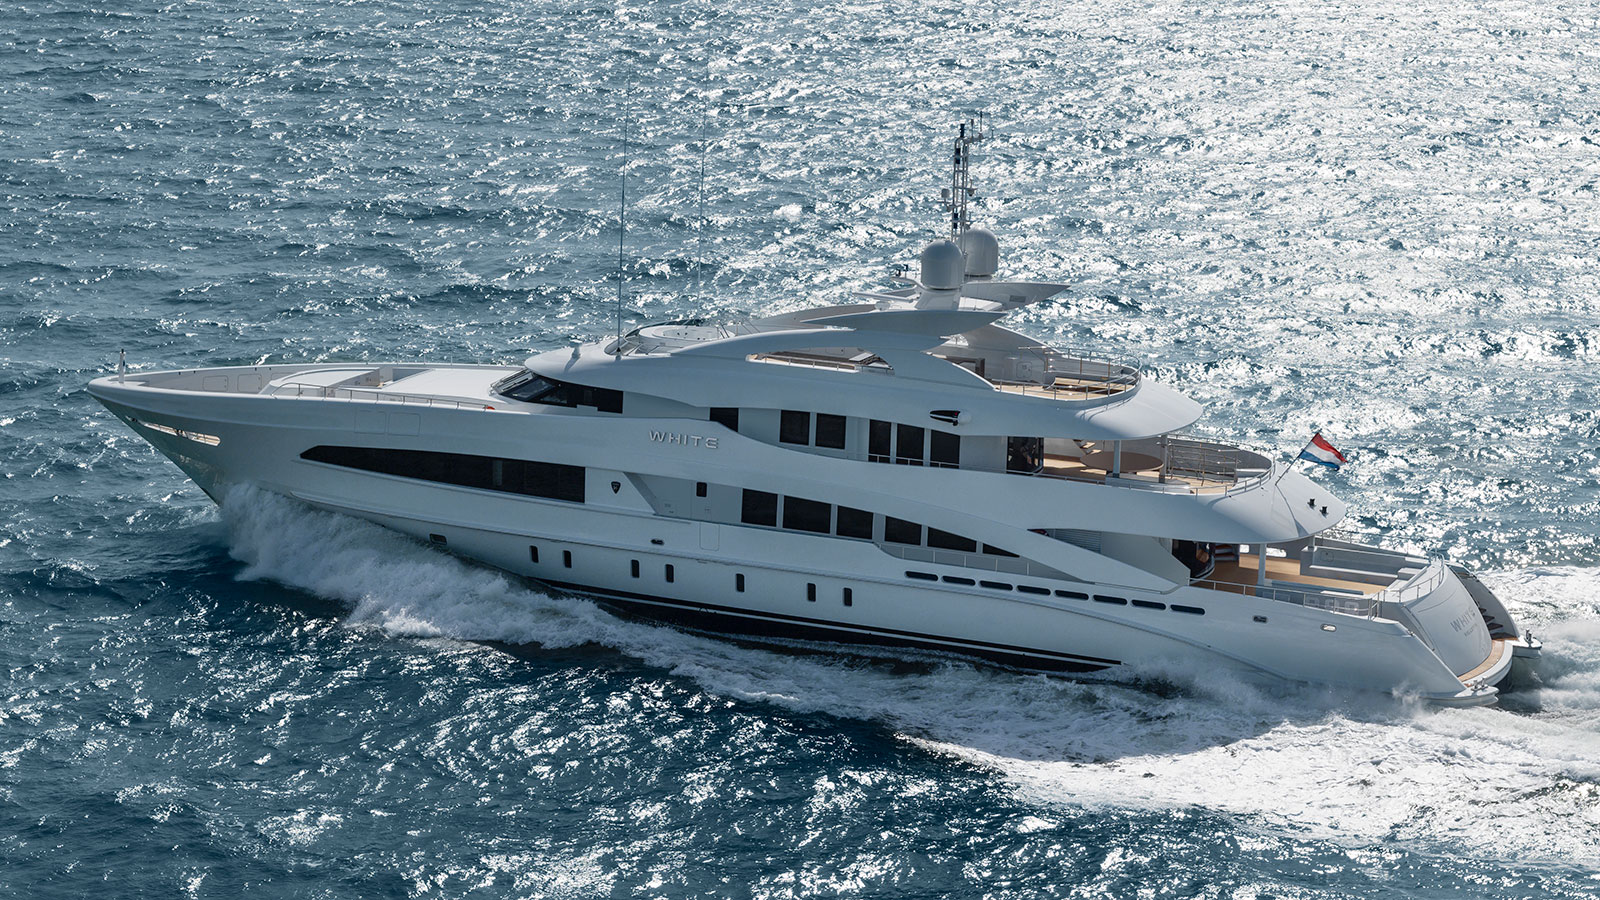 side-view-of-the-heesen-super-yacht-white-credit-dick-holthuis